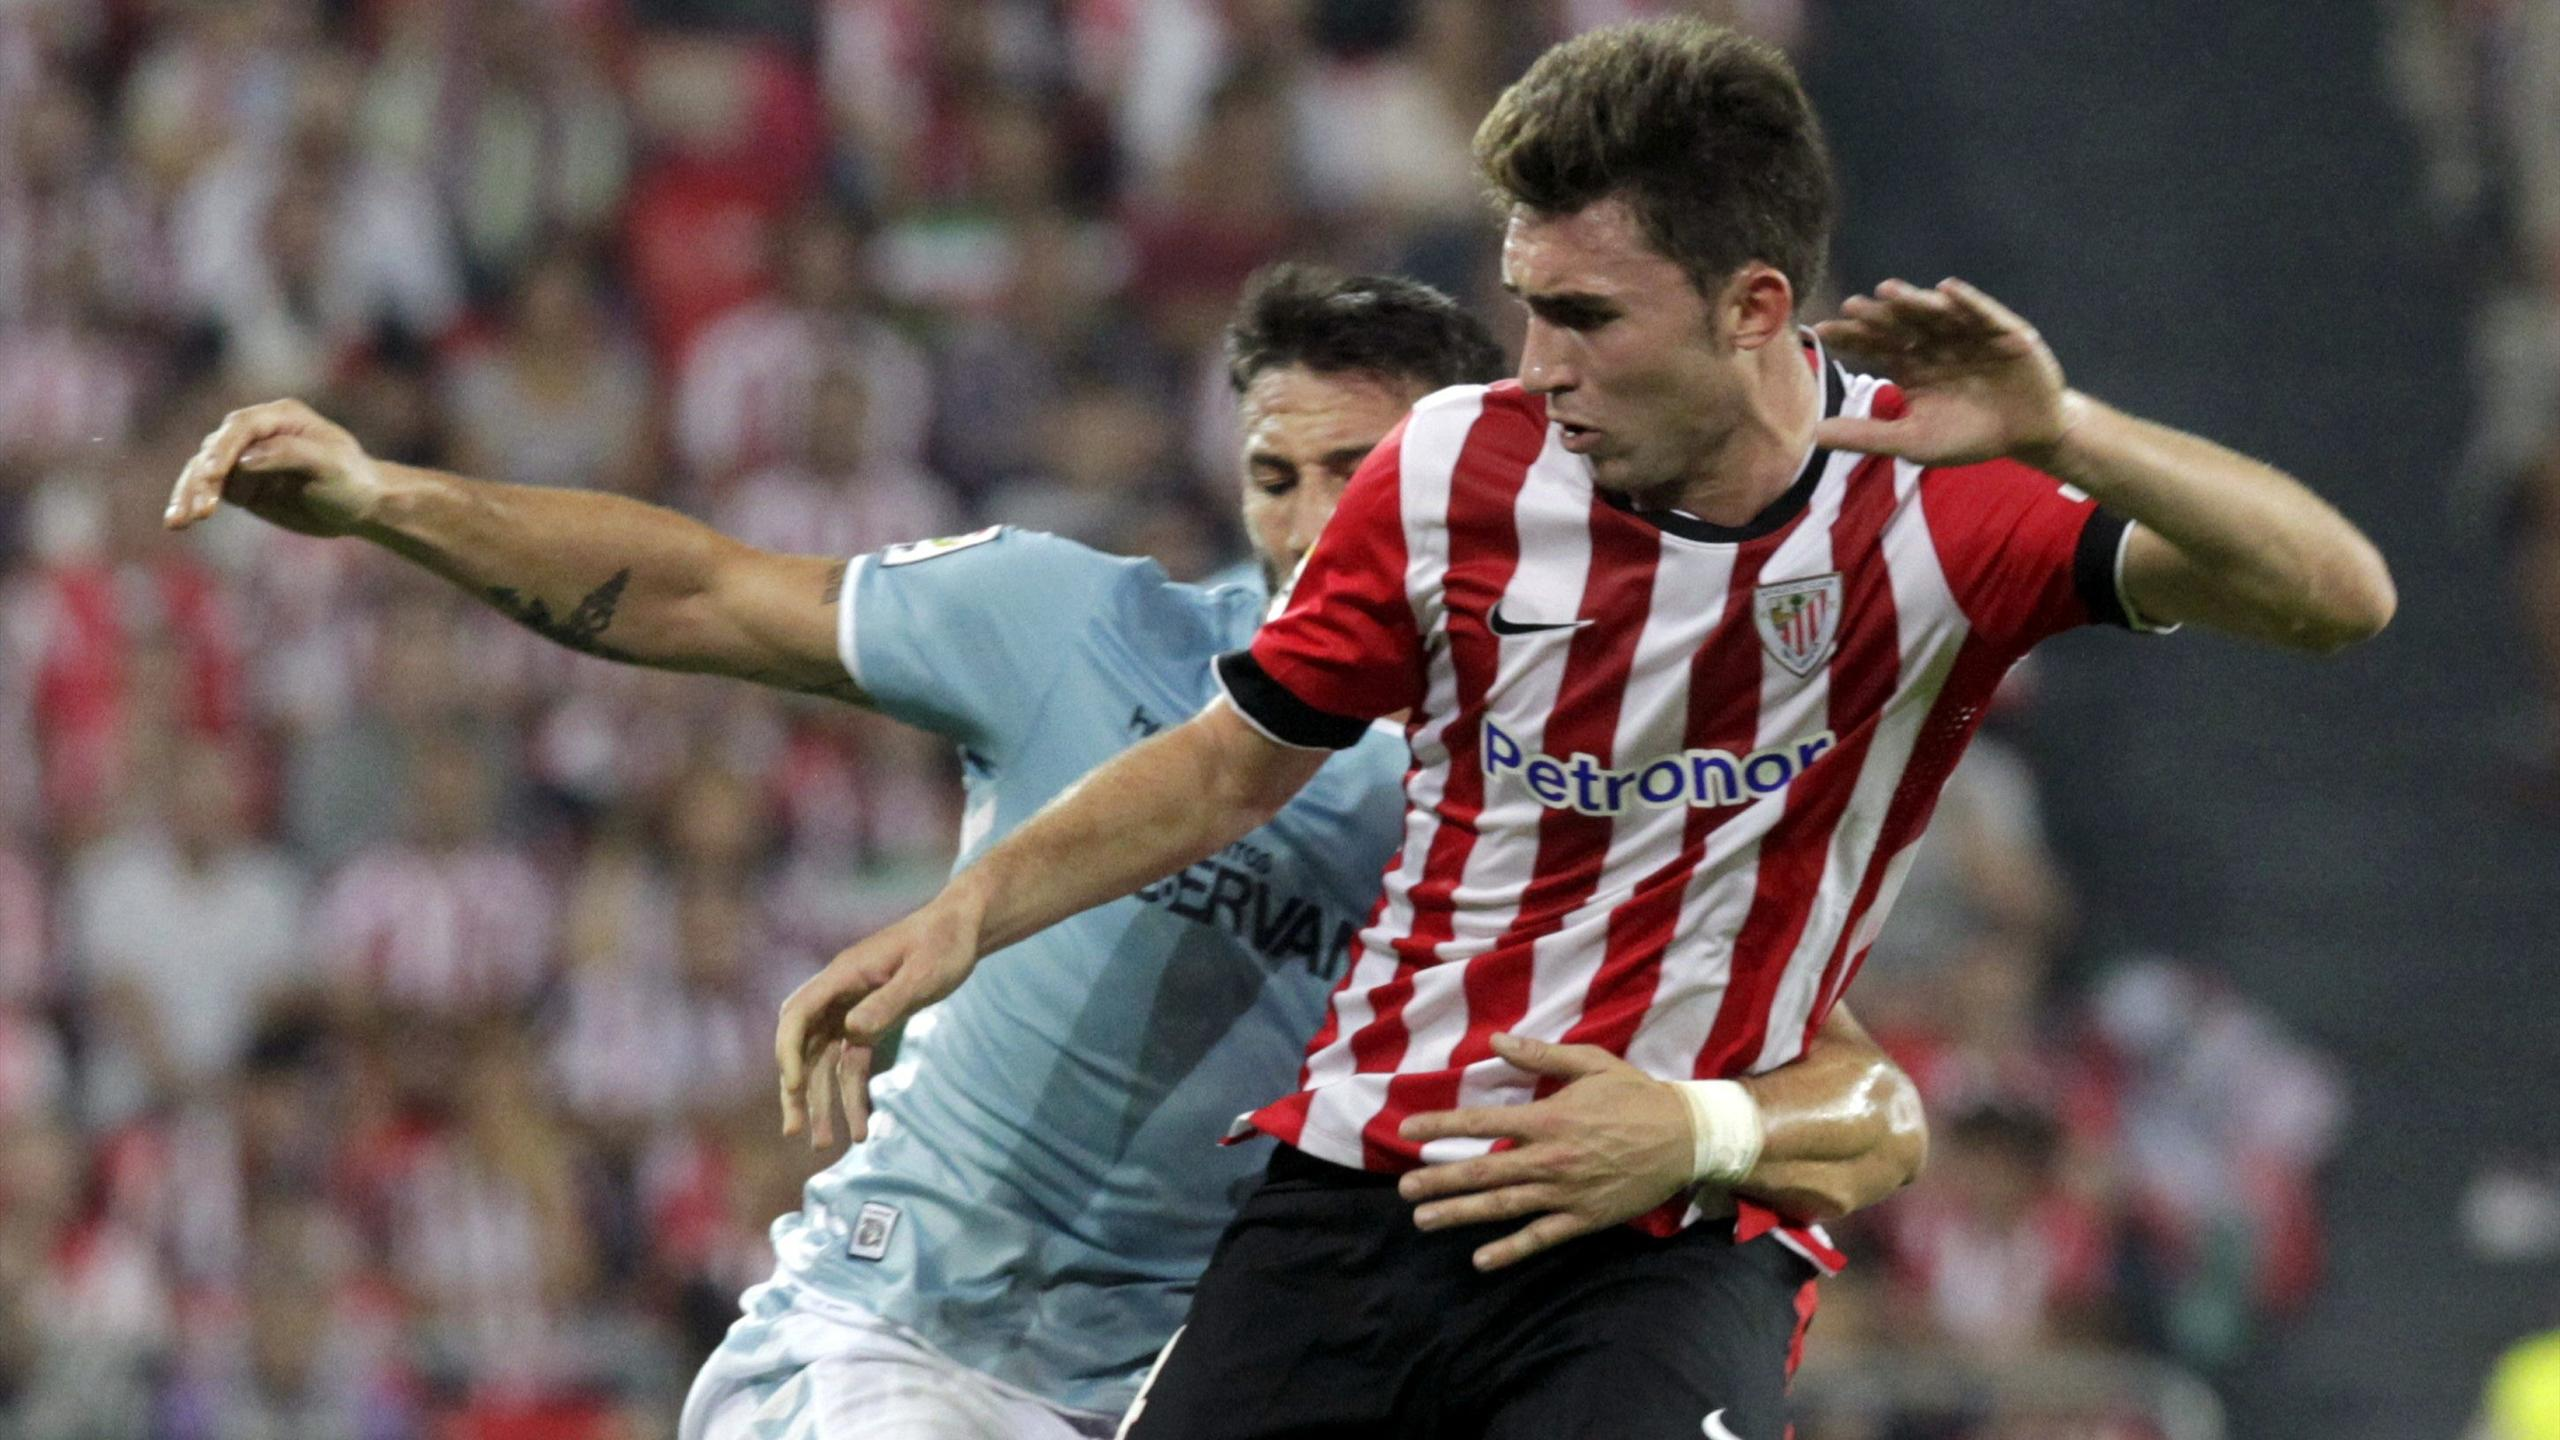 Video: Athletic Bilbao vs Eibar